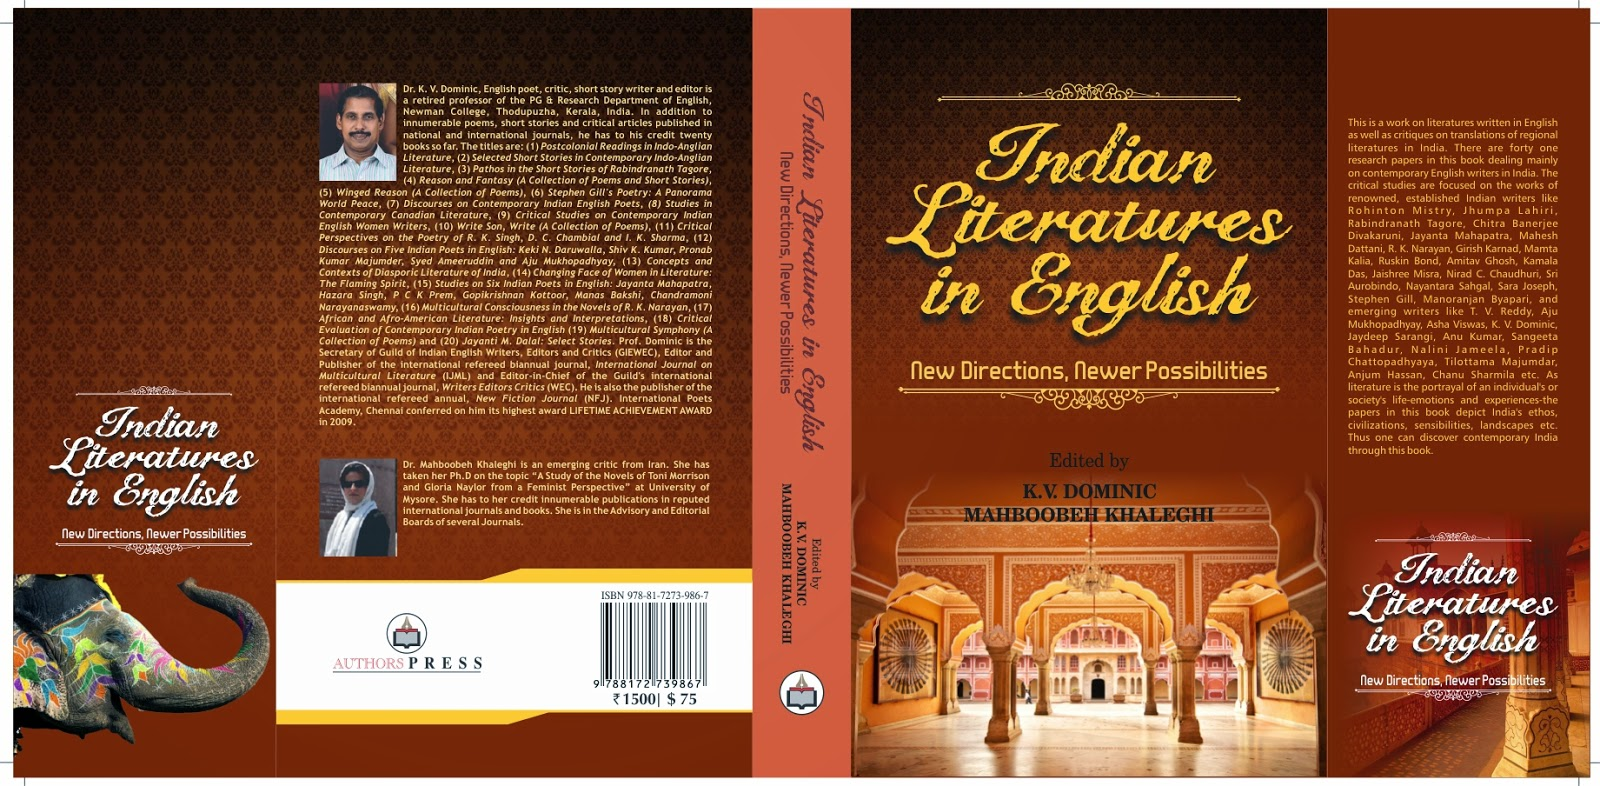 indo anglian literature Understanding of the indo-anglian literature and the rise and development of novel in indo-anglian literature, the major novels of mulk raj anand can be judged properly indo-anglian literature contributed to the common pool of world writing in english it is a literature which is a combination of indian 9 literature and indian literature written in english.